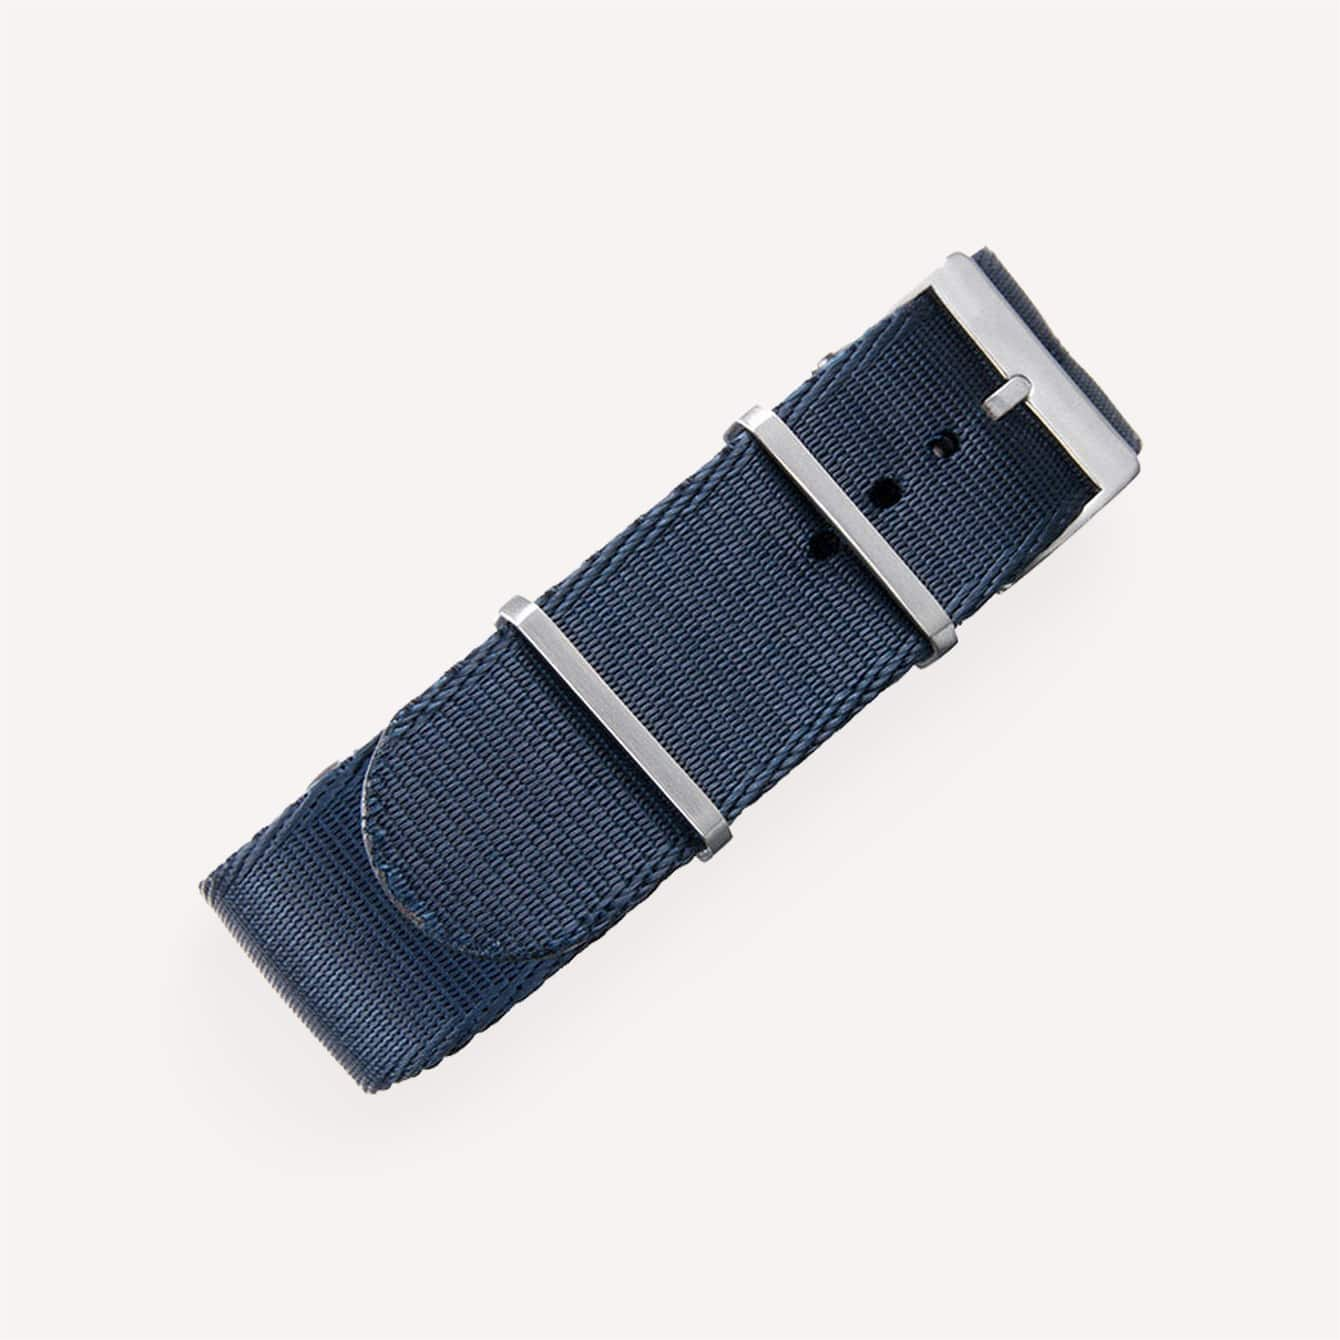 Crown and Buckle Supreme Nato 22mm Midnight